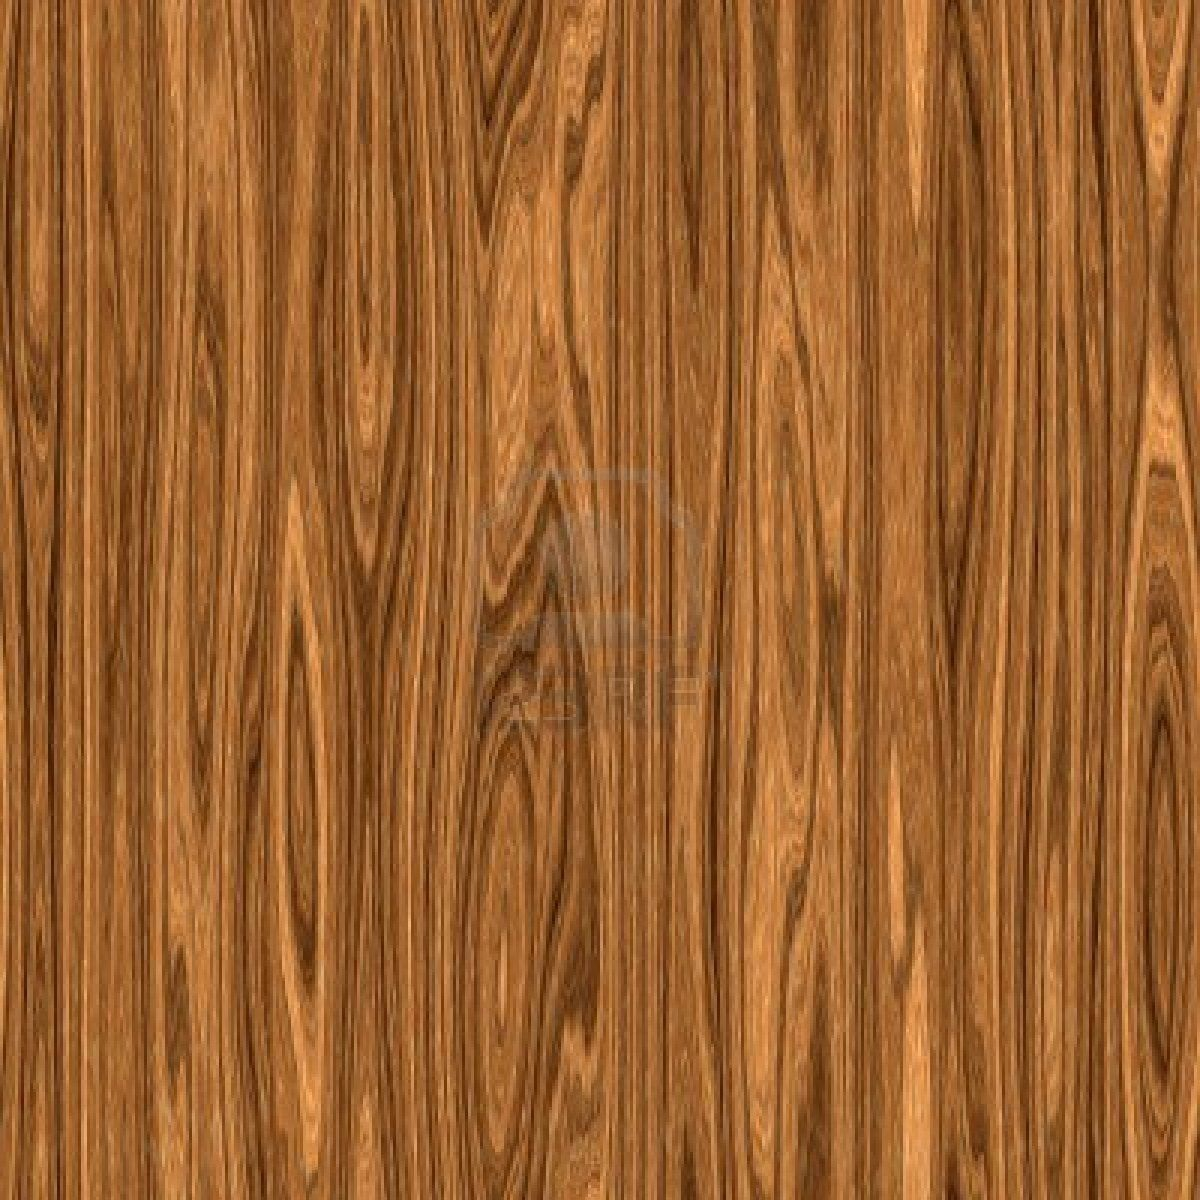 Tileable wood table texture - Seamless Light Brown Wood Texture With Knots 123rf 2013